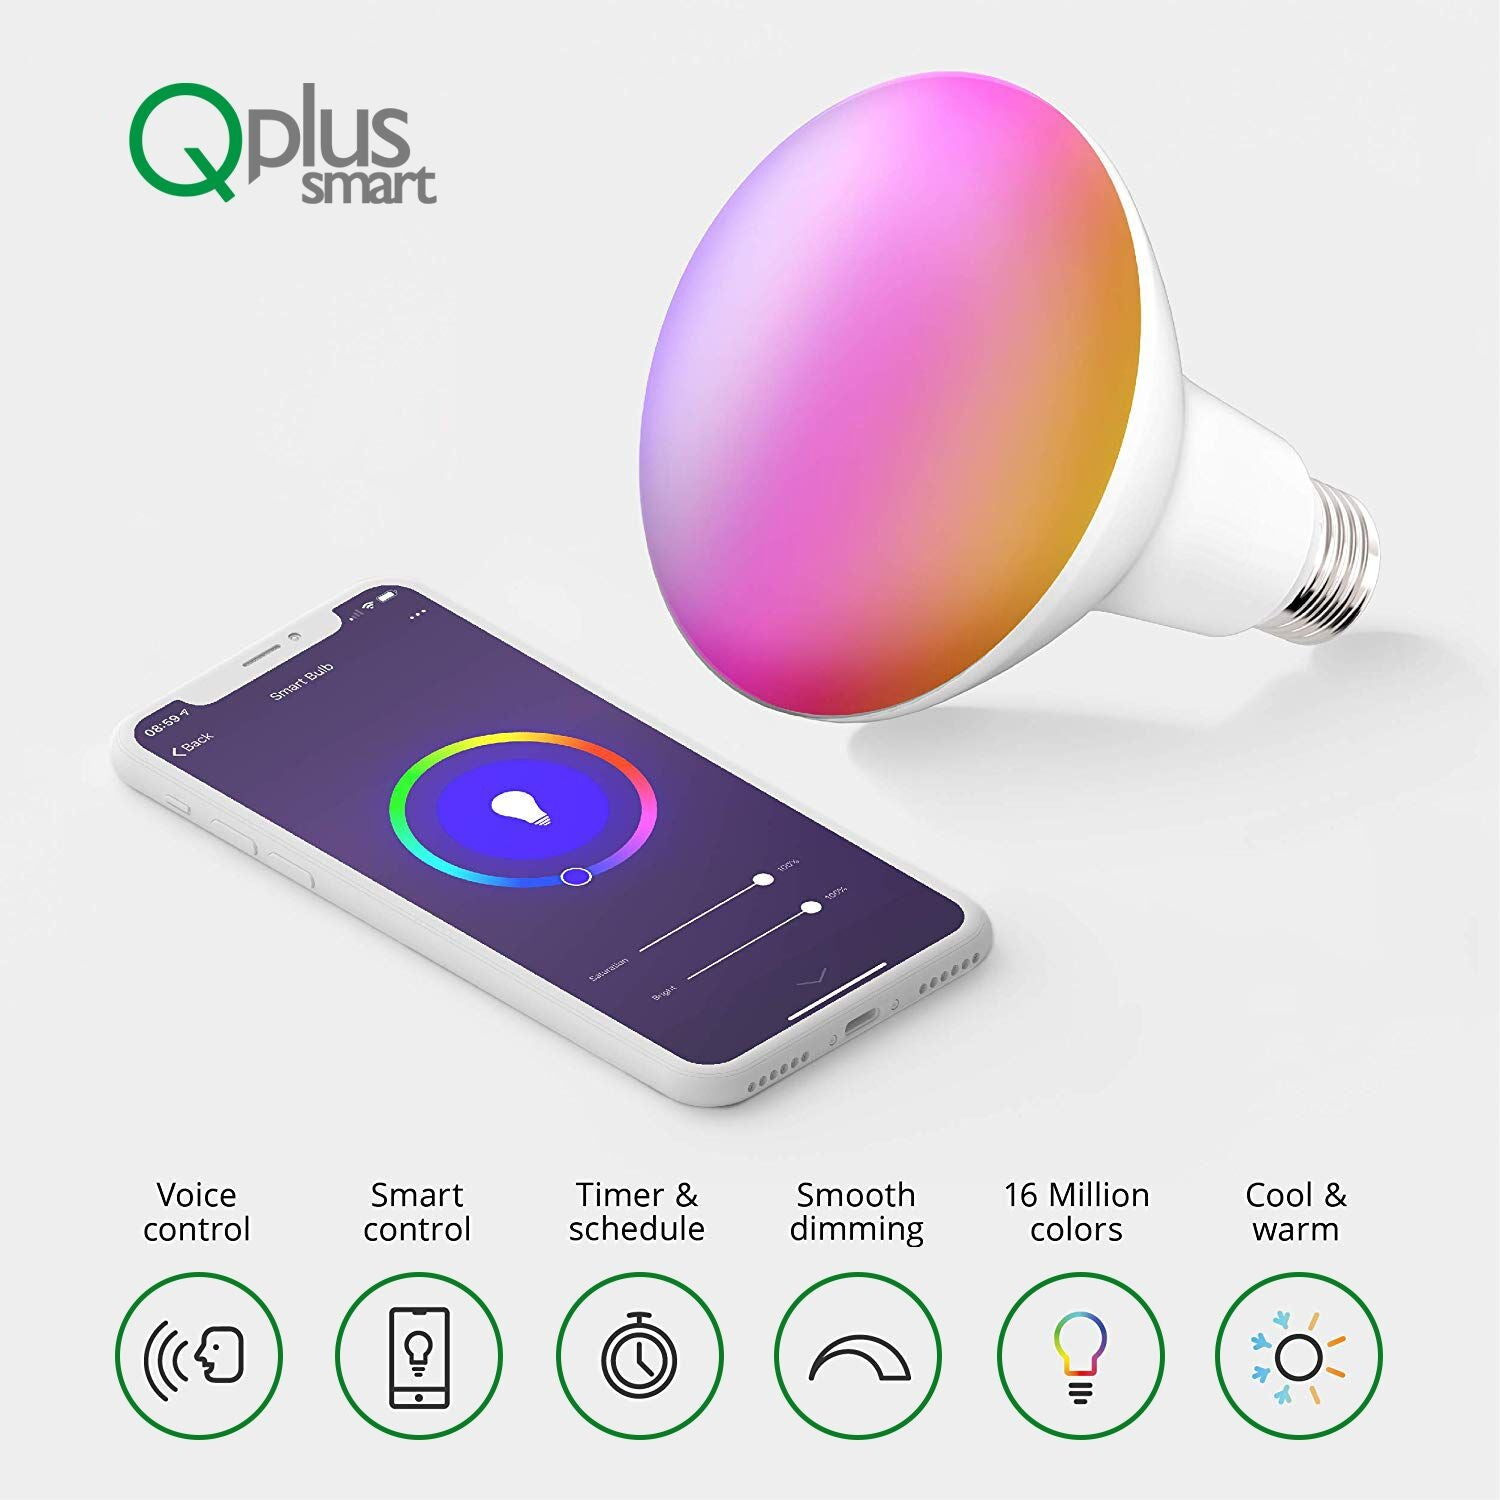 QPlus 9W Smart LED Bulb BR30 (WiFi - No Hub) - RGB Multi Color 16 million colors & Tunable White 2700K to 6500K (1 Pack)